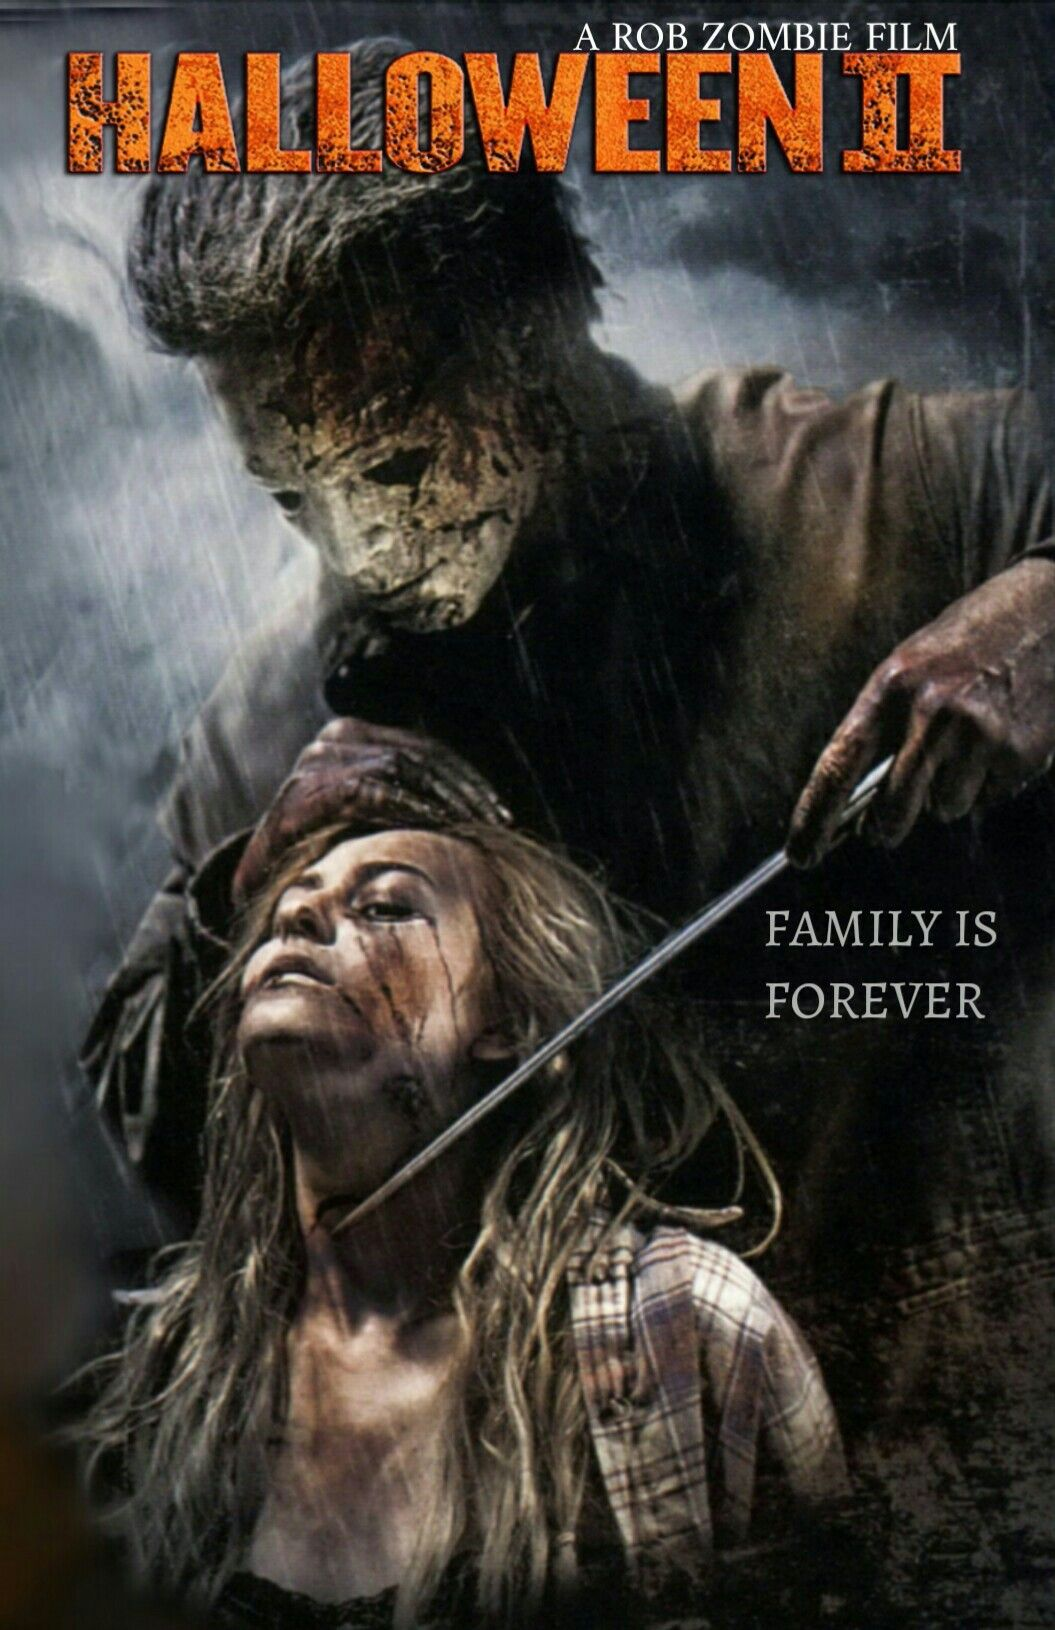 halloween 2 rob zombie horror movie slasher